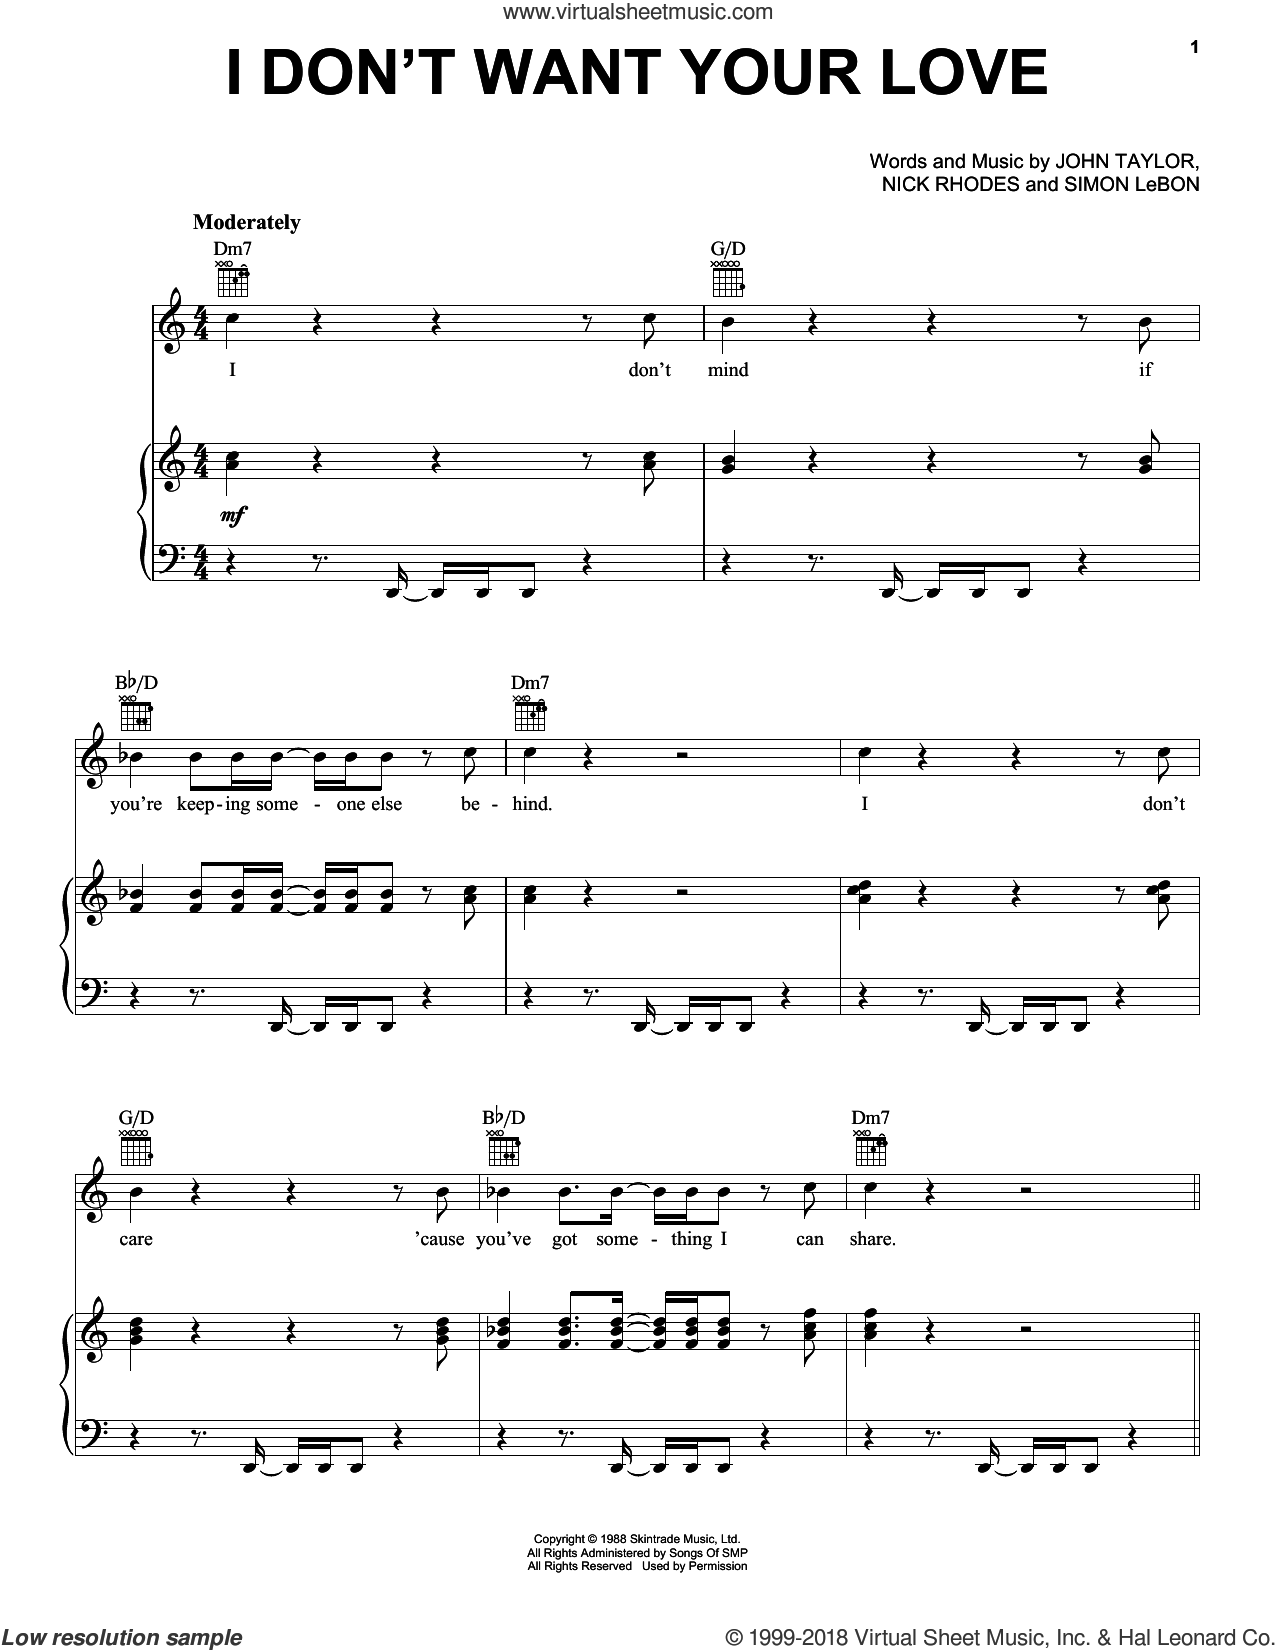 I Don't Want Your Love sheet music for voice, piano or guitar by Duran Duran and John Taylor, intermediate voice, piano or guitar. Score Image Preview.